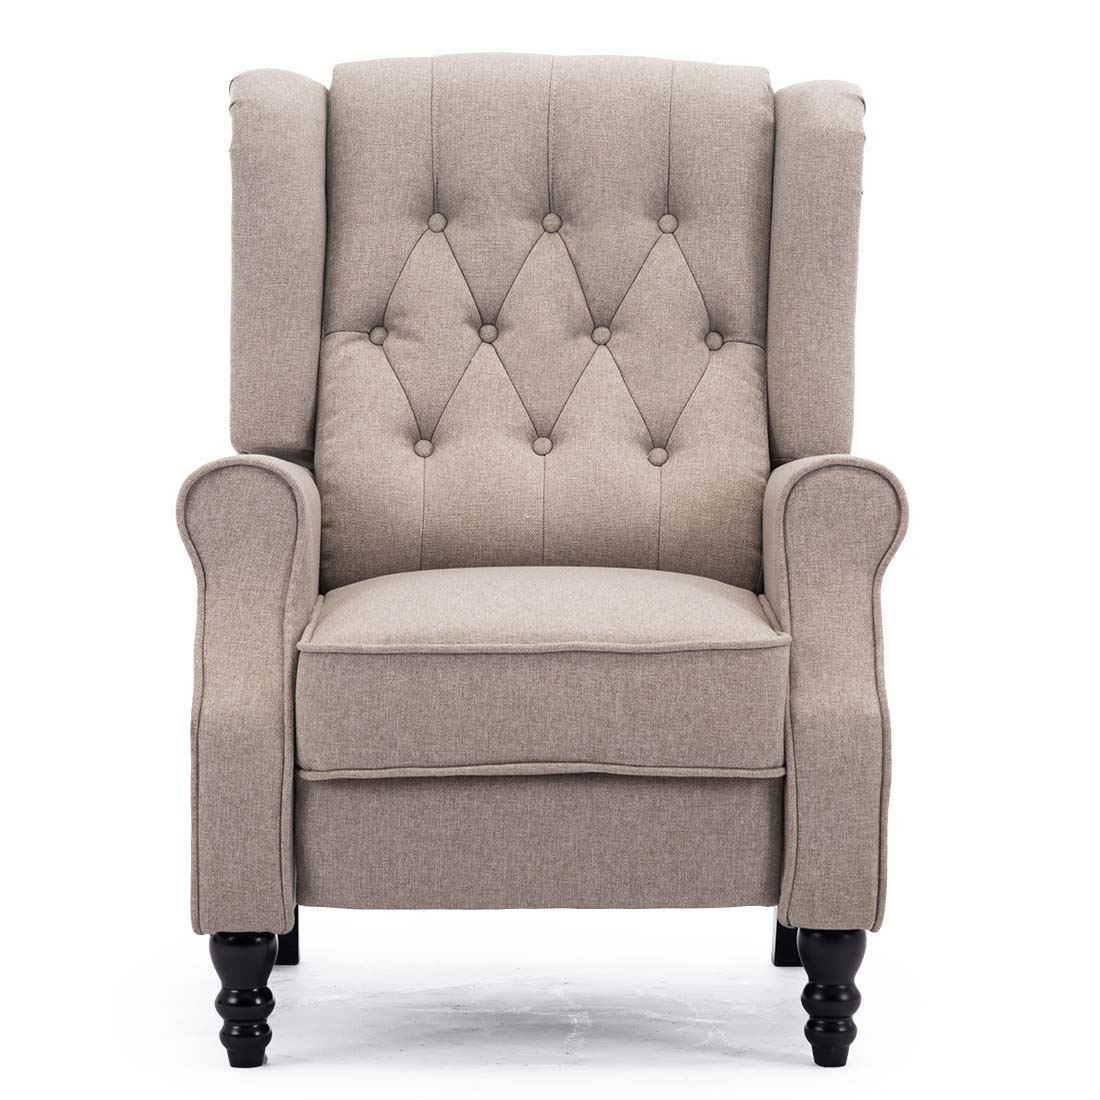 Wingback Recliner Chair Details About Althorpe Wing Back Recliner Chair Fabric Button Fireside Occasional Armchair